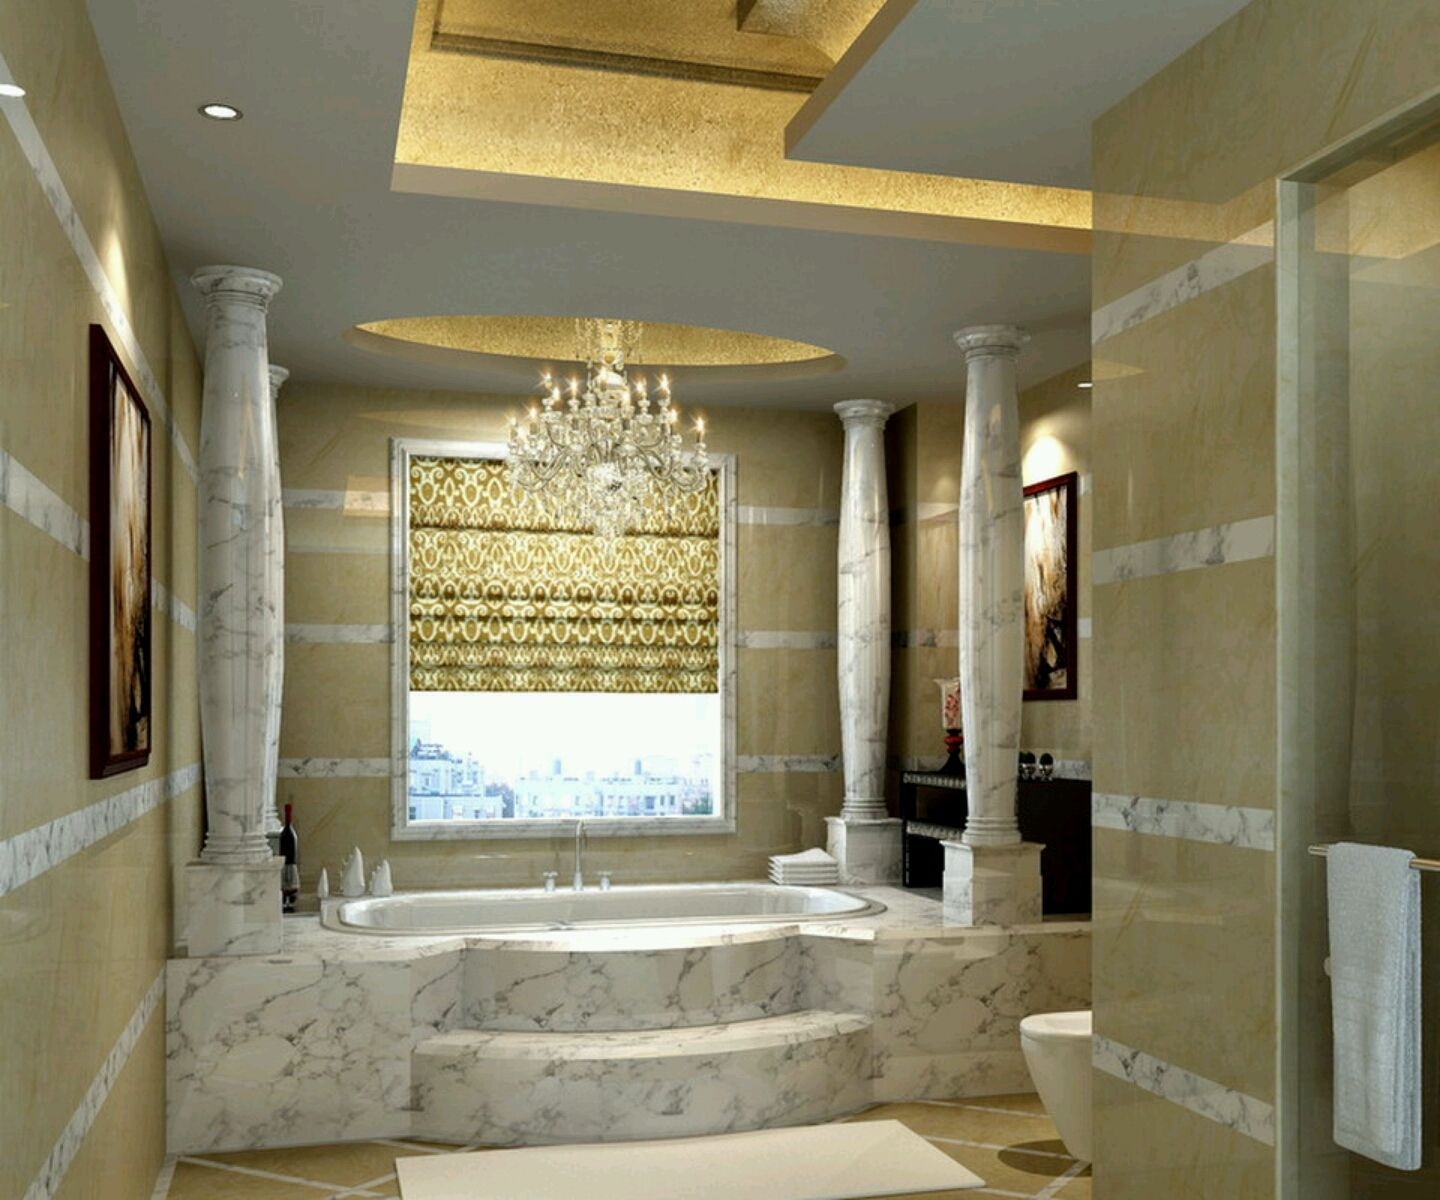 Best Master Bathroom Designs Fascinating 11 Luxurious Bathroom That Will Make You Don't Want To Leave Decorating Inspiration